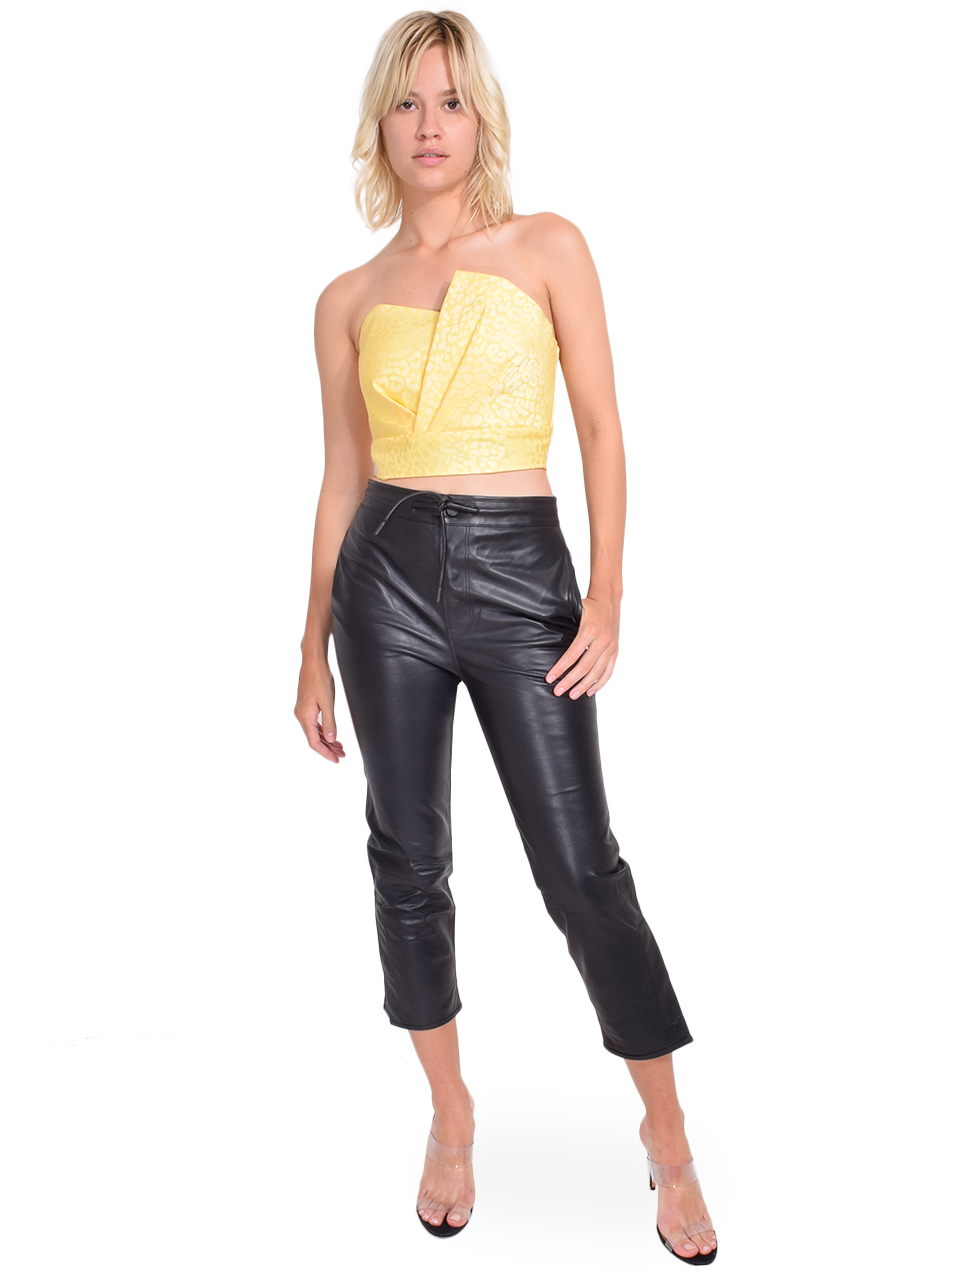 RtA Matisse Pants in Black Leather Full Outfit